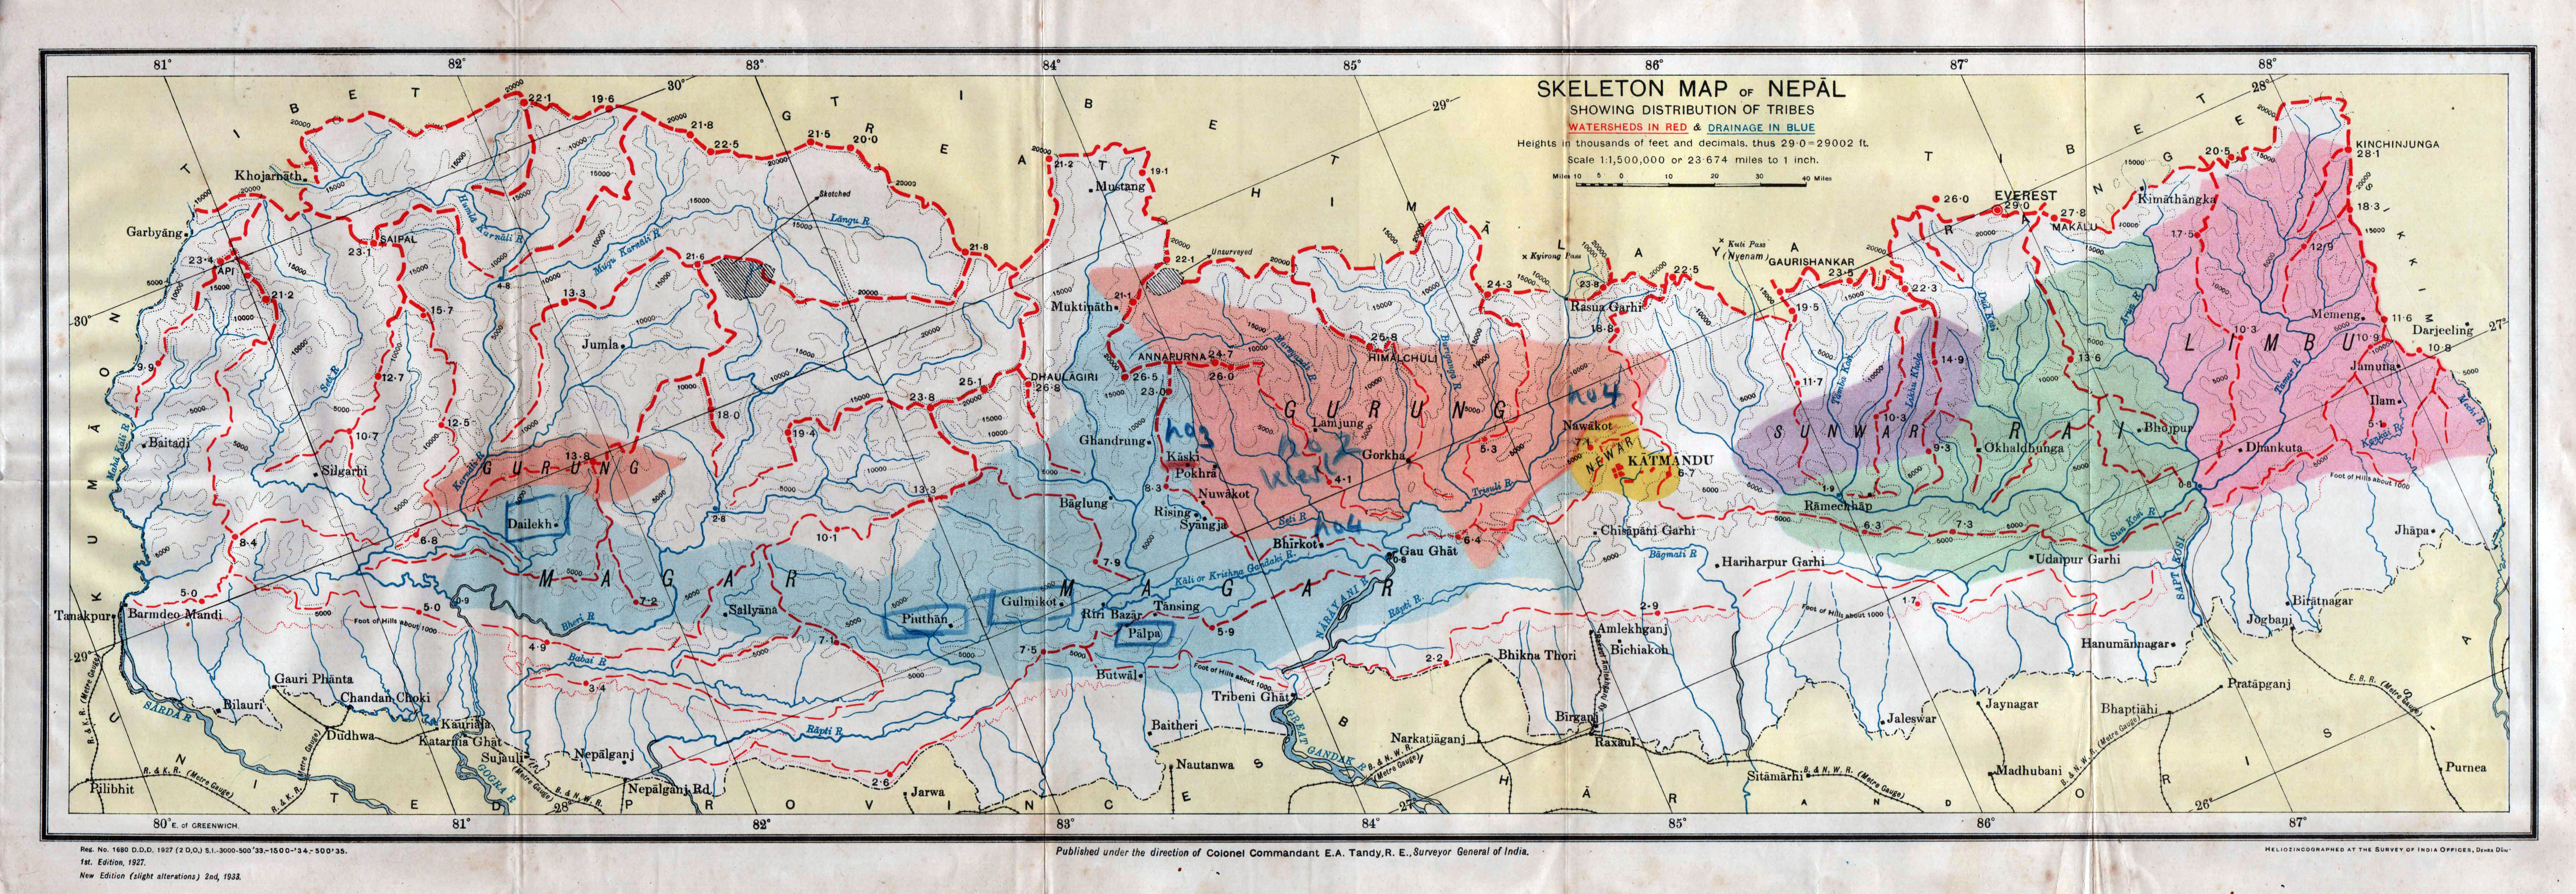 Large scale detailed old skeleton map of nepal showing distribution large scale detailed old skeleton map of nepal showing distribution of tribes 1933 gumiabroncs Image collections